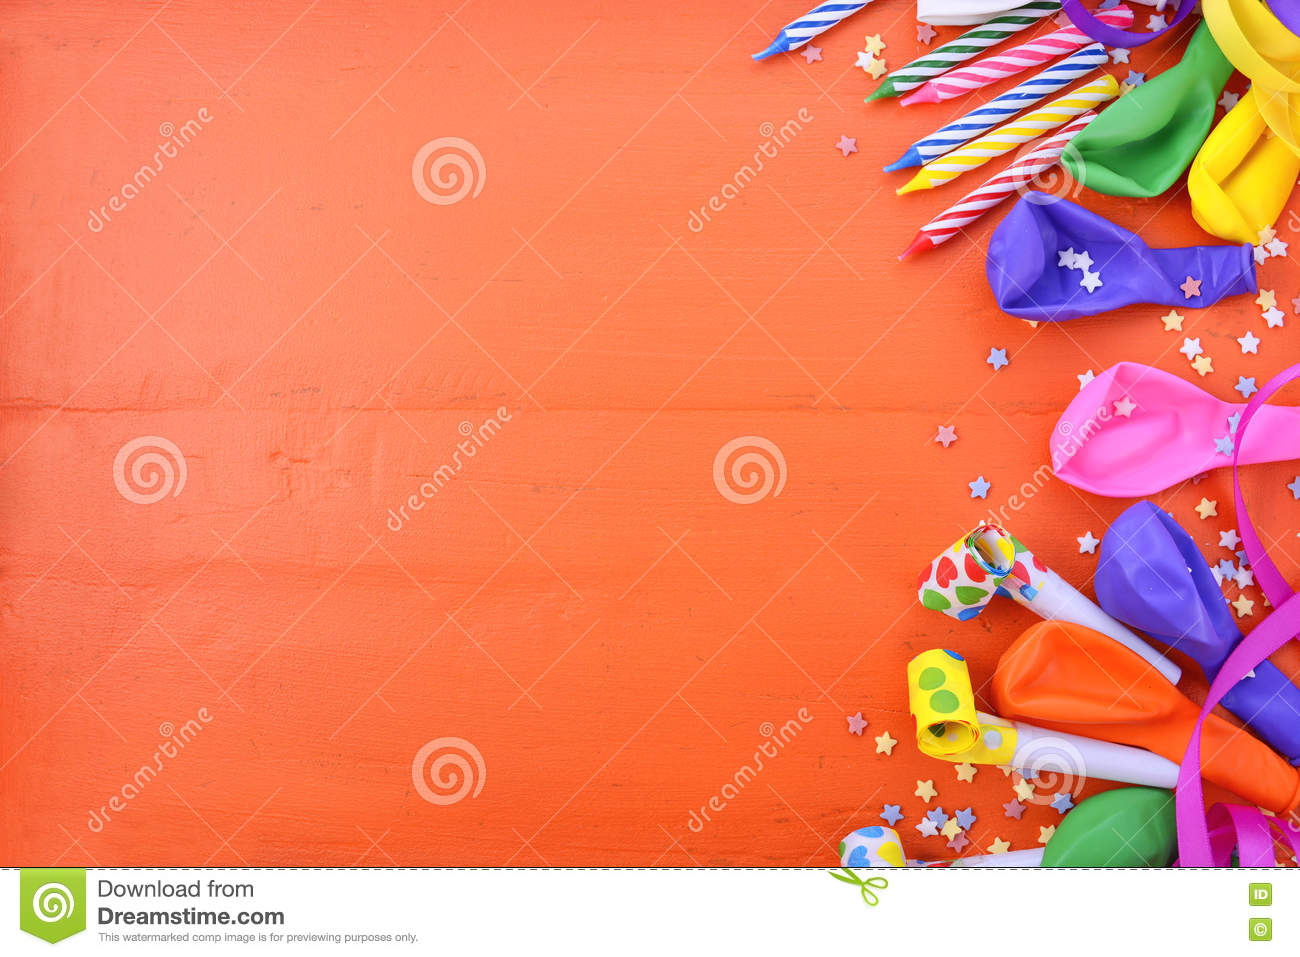 Happy Birthday Background With Decorated Borders Party Decorations On A Bright Orange Wood Table Copy Space For Your Text Here